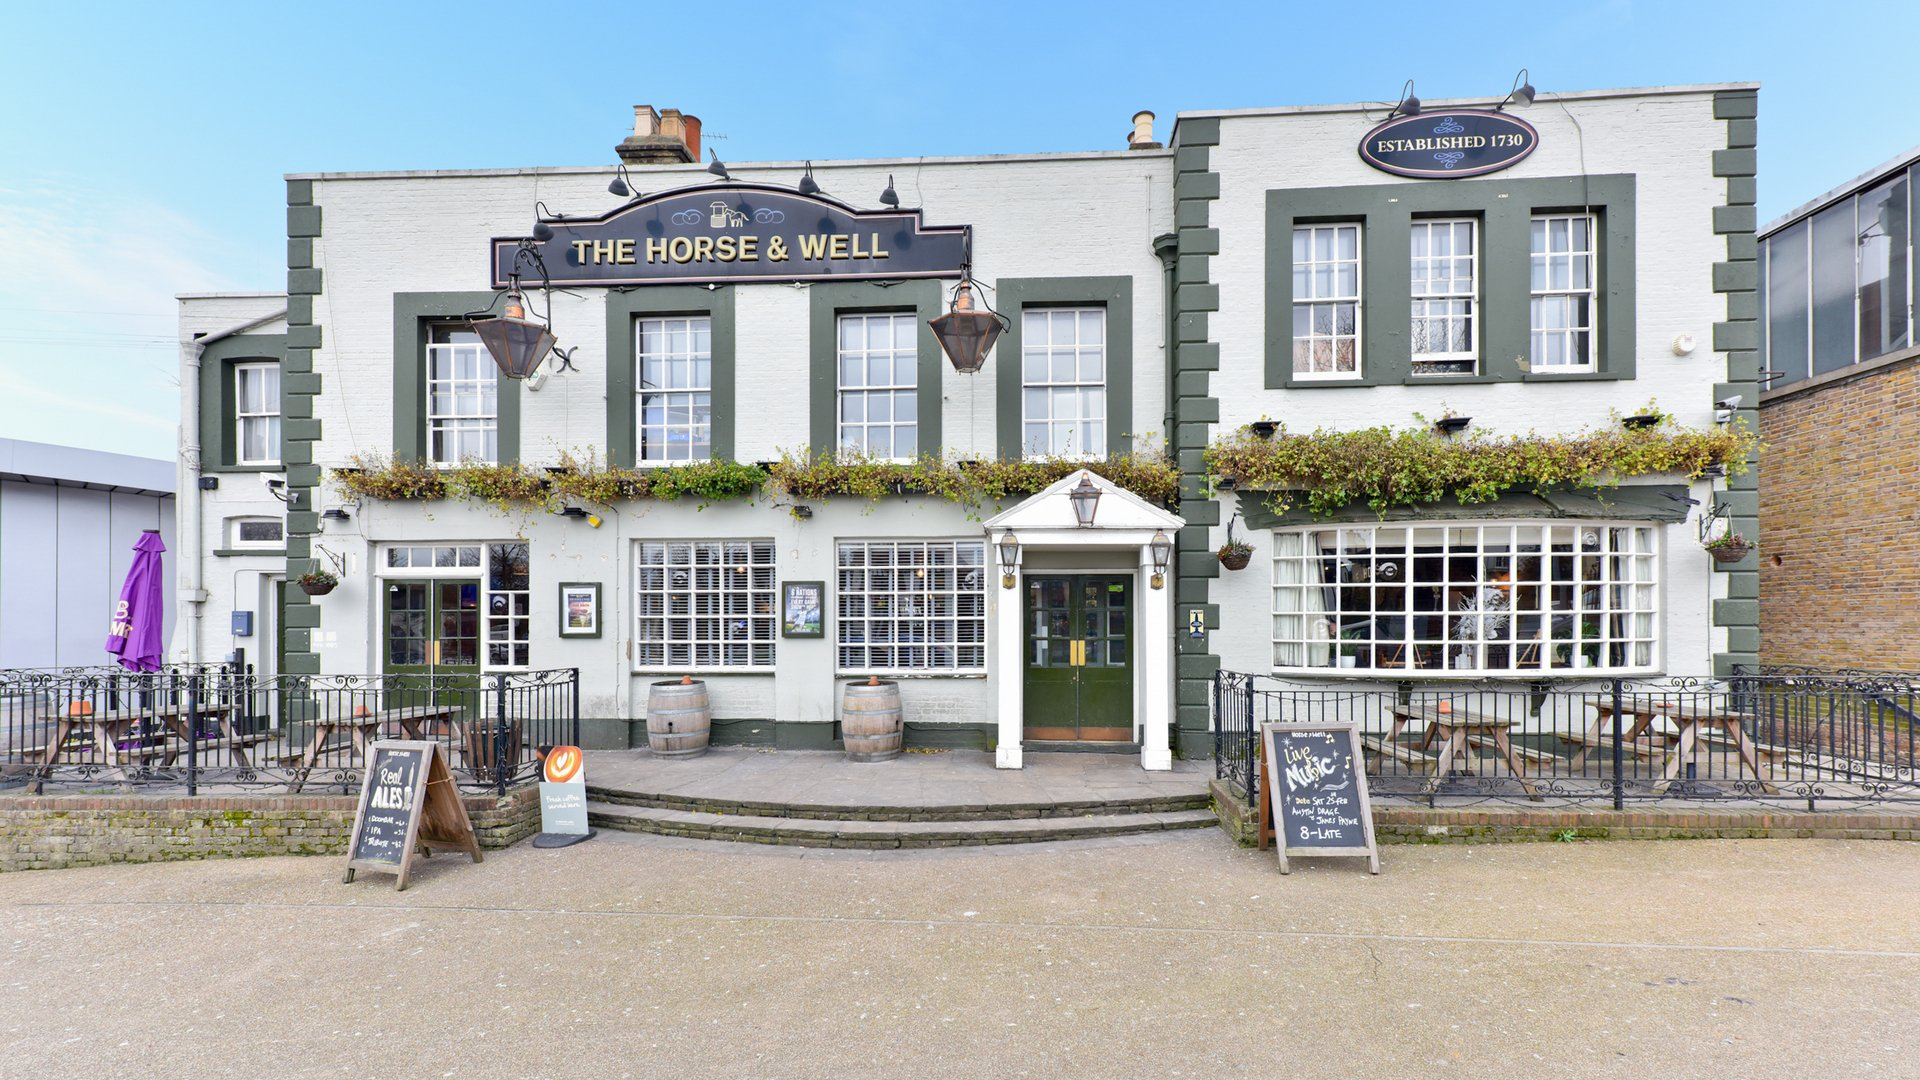 The Horse & Well pub quiz